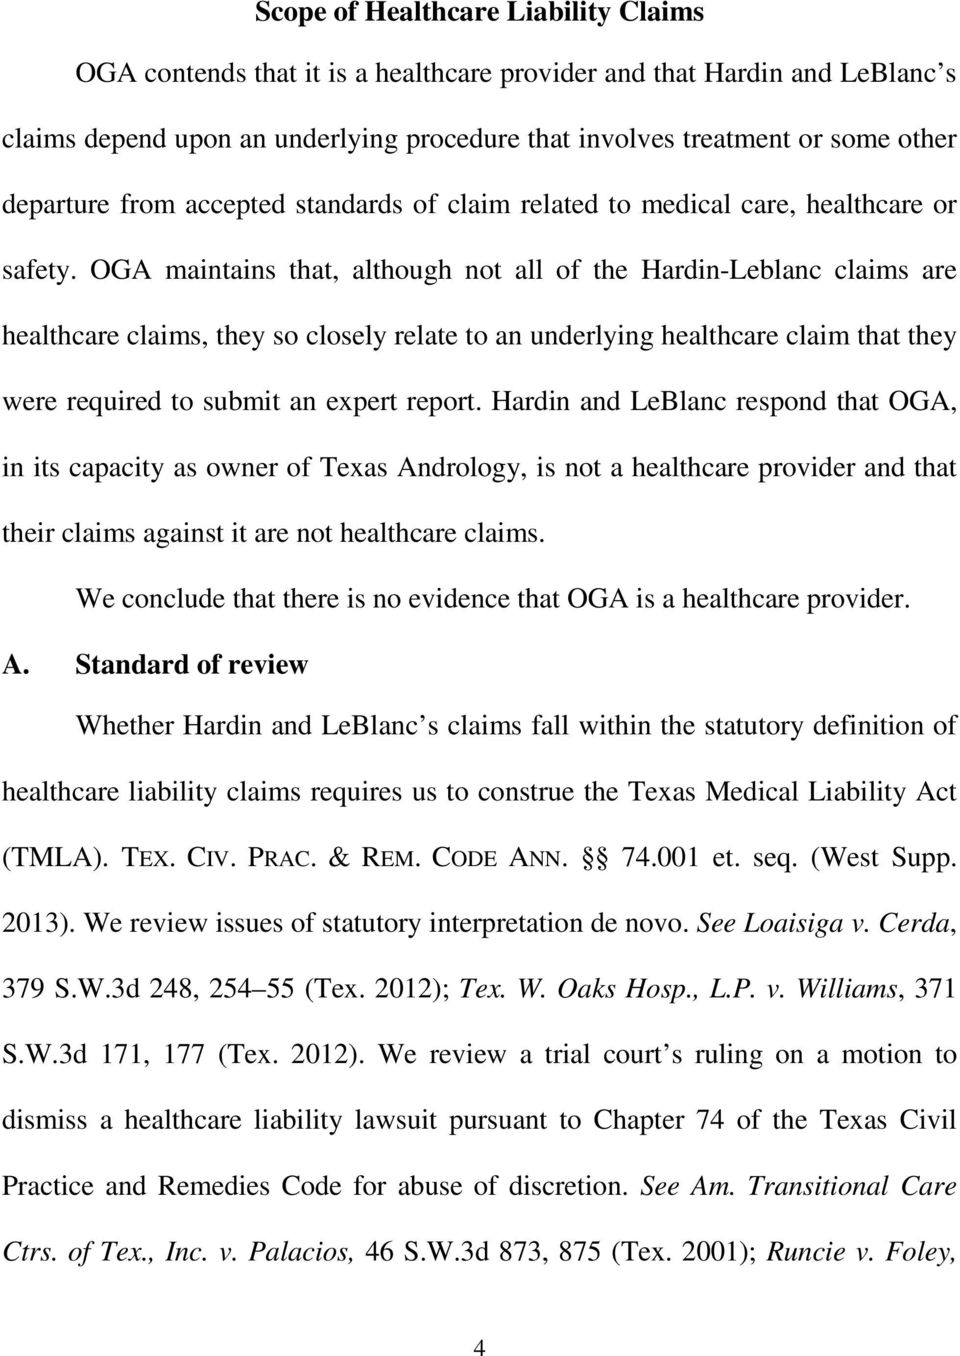 OGA maintains that, although not all of the Hardin-Leblanc claims are healthcare claims, they so closely relate to an underlying healthcare claim that they were required to submit an expert report.